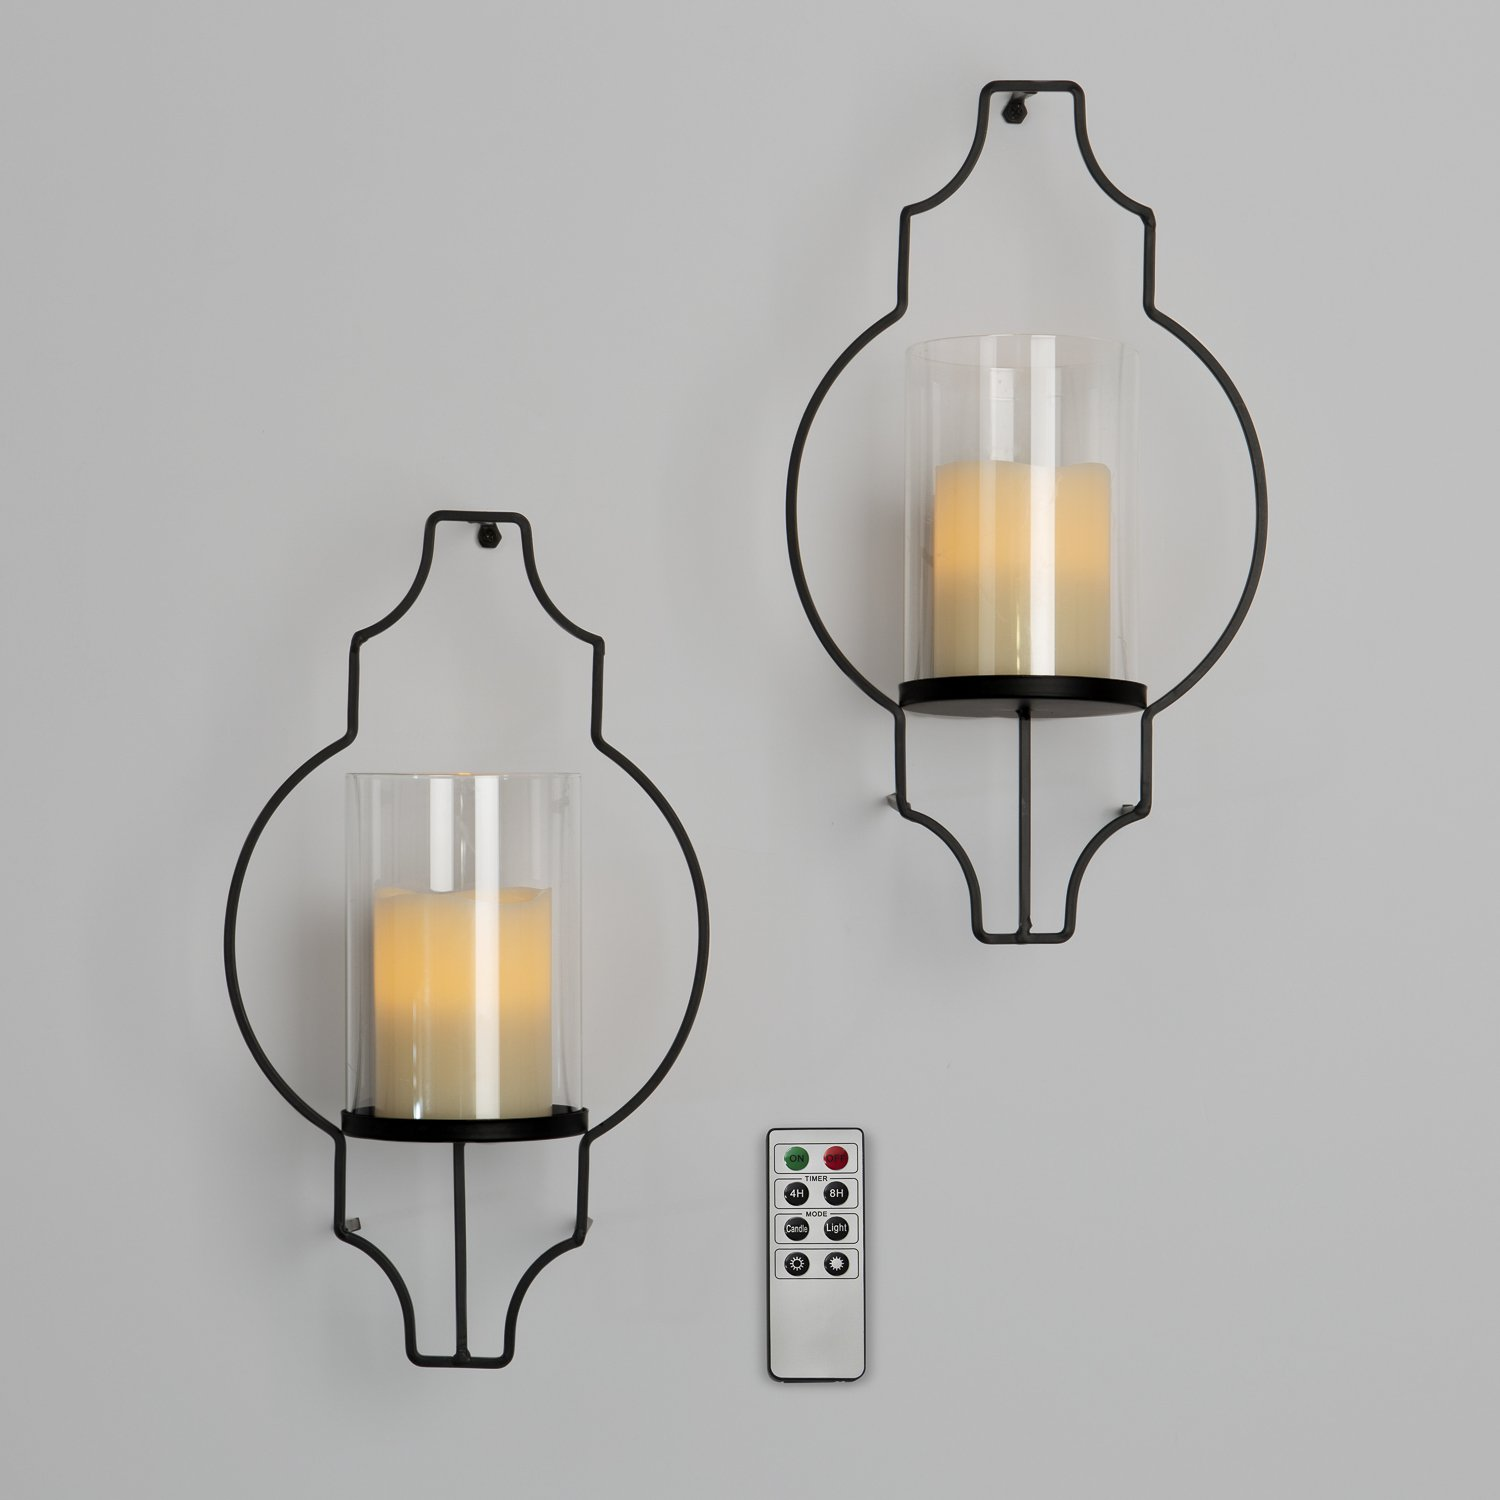 Cheap Hurricane Candle Wall Sconces Find Hurricane Candle Wall